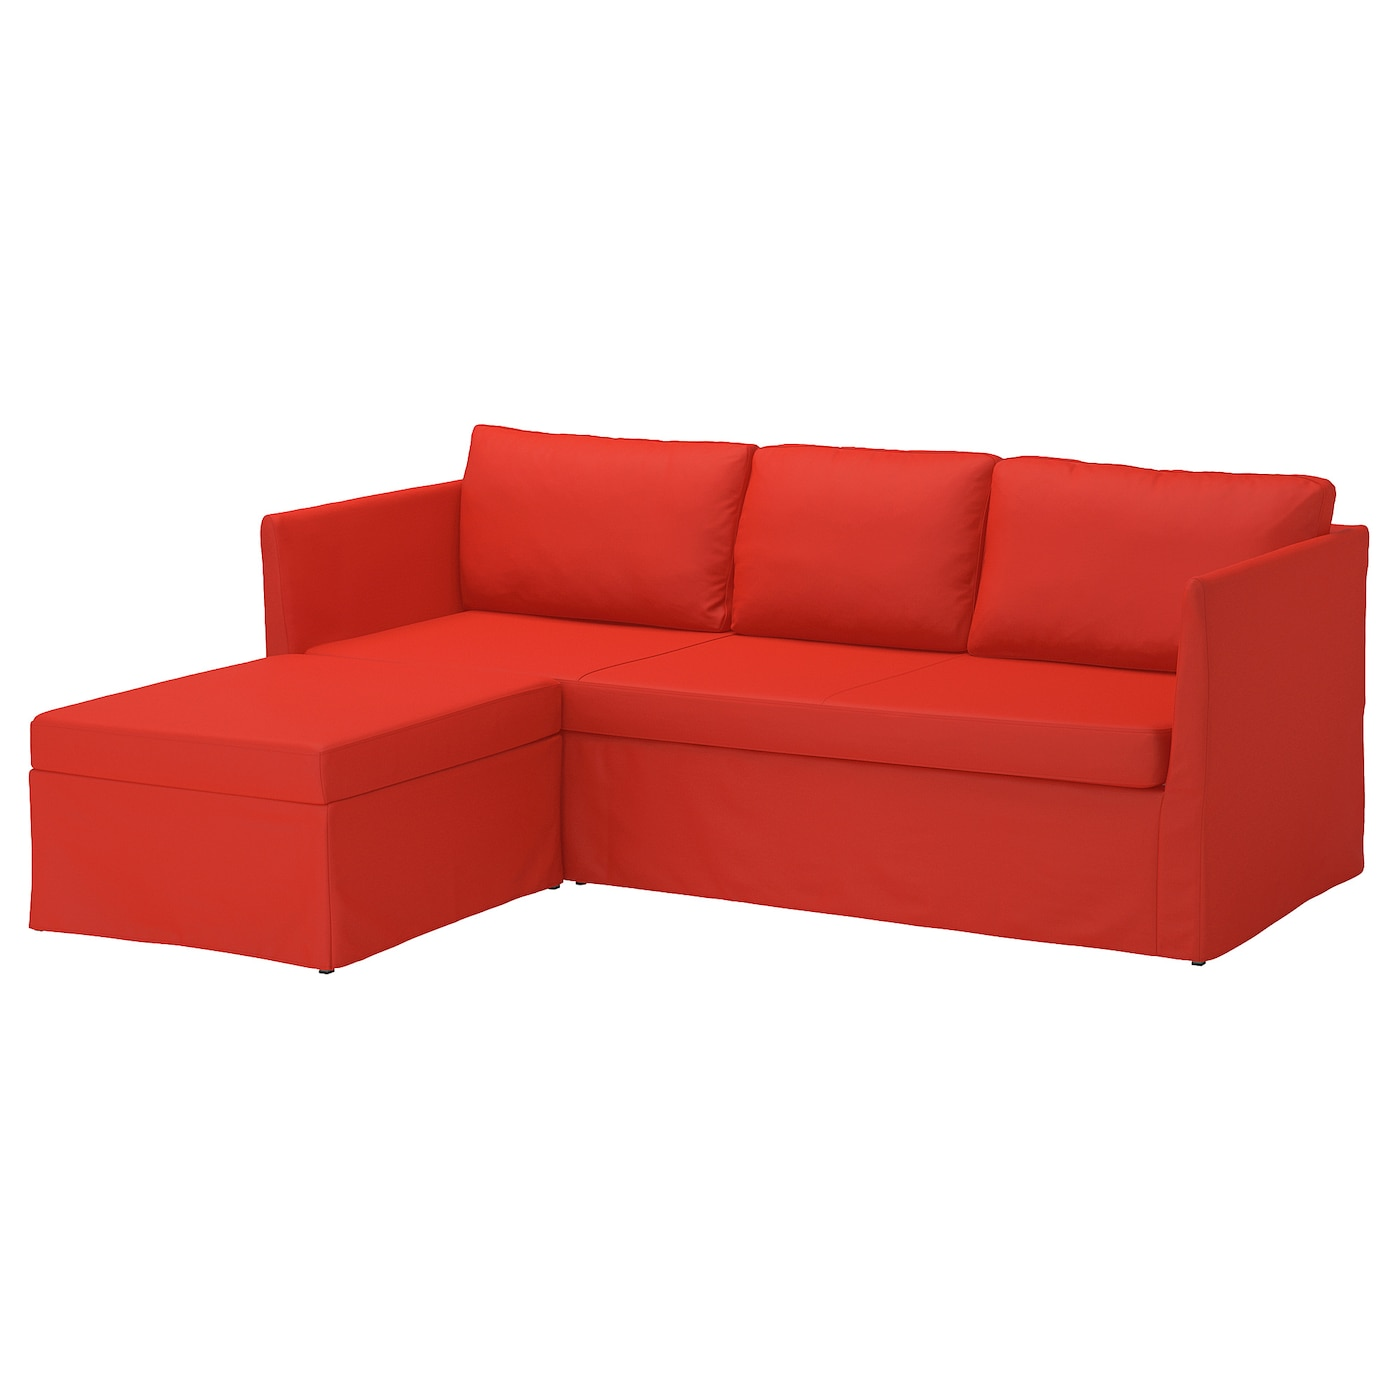 Ikea BrÅthult Corner Sofa 3 Seat You Sit Comfortably Thanks To The Resilient Foam